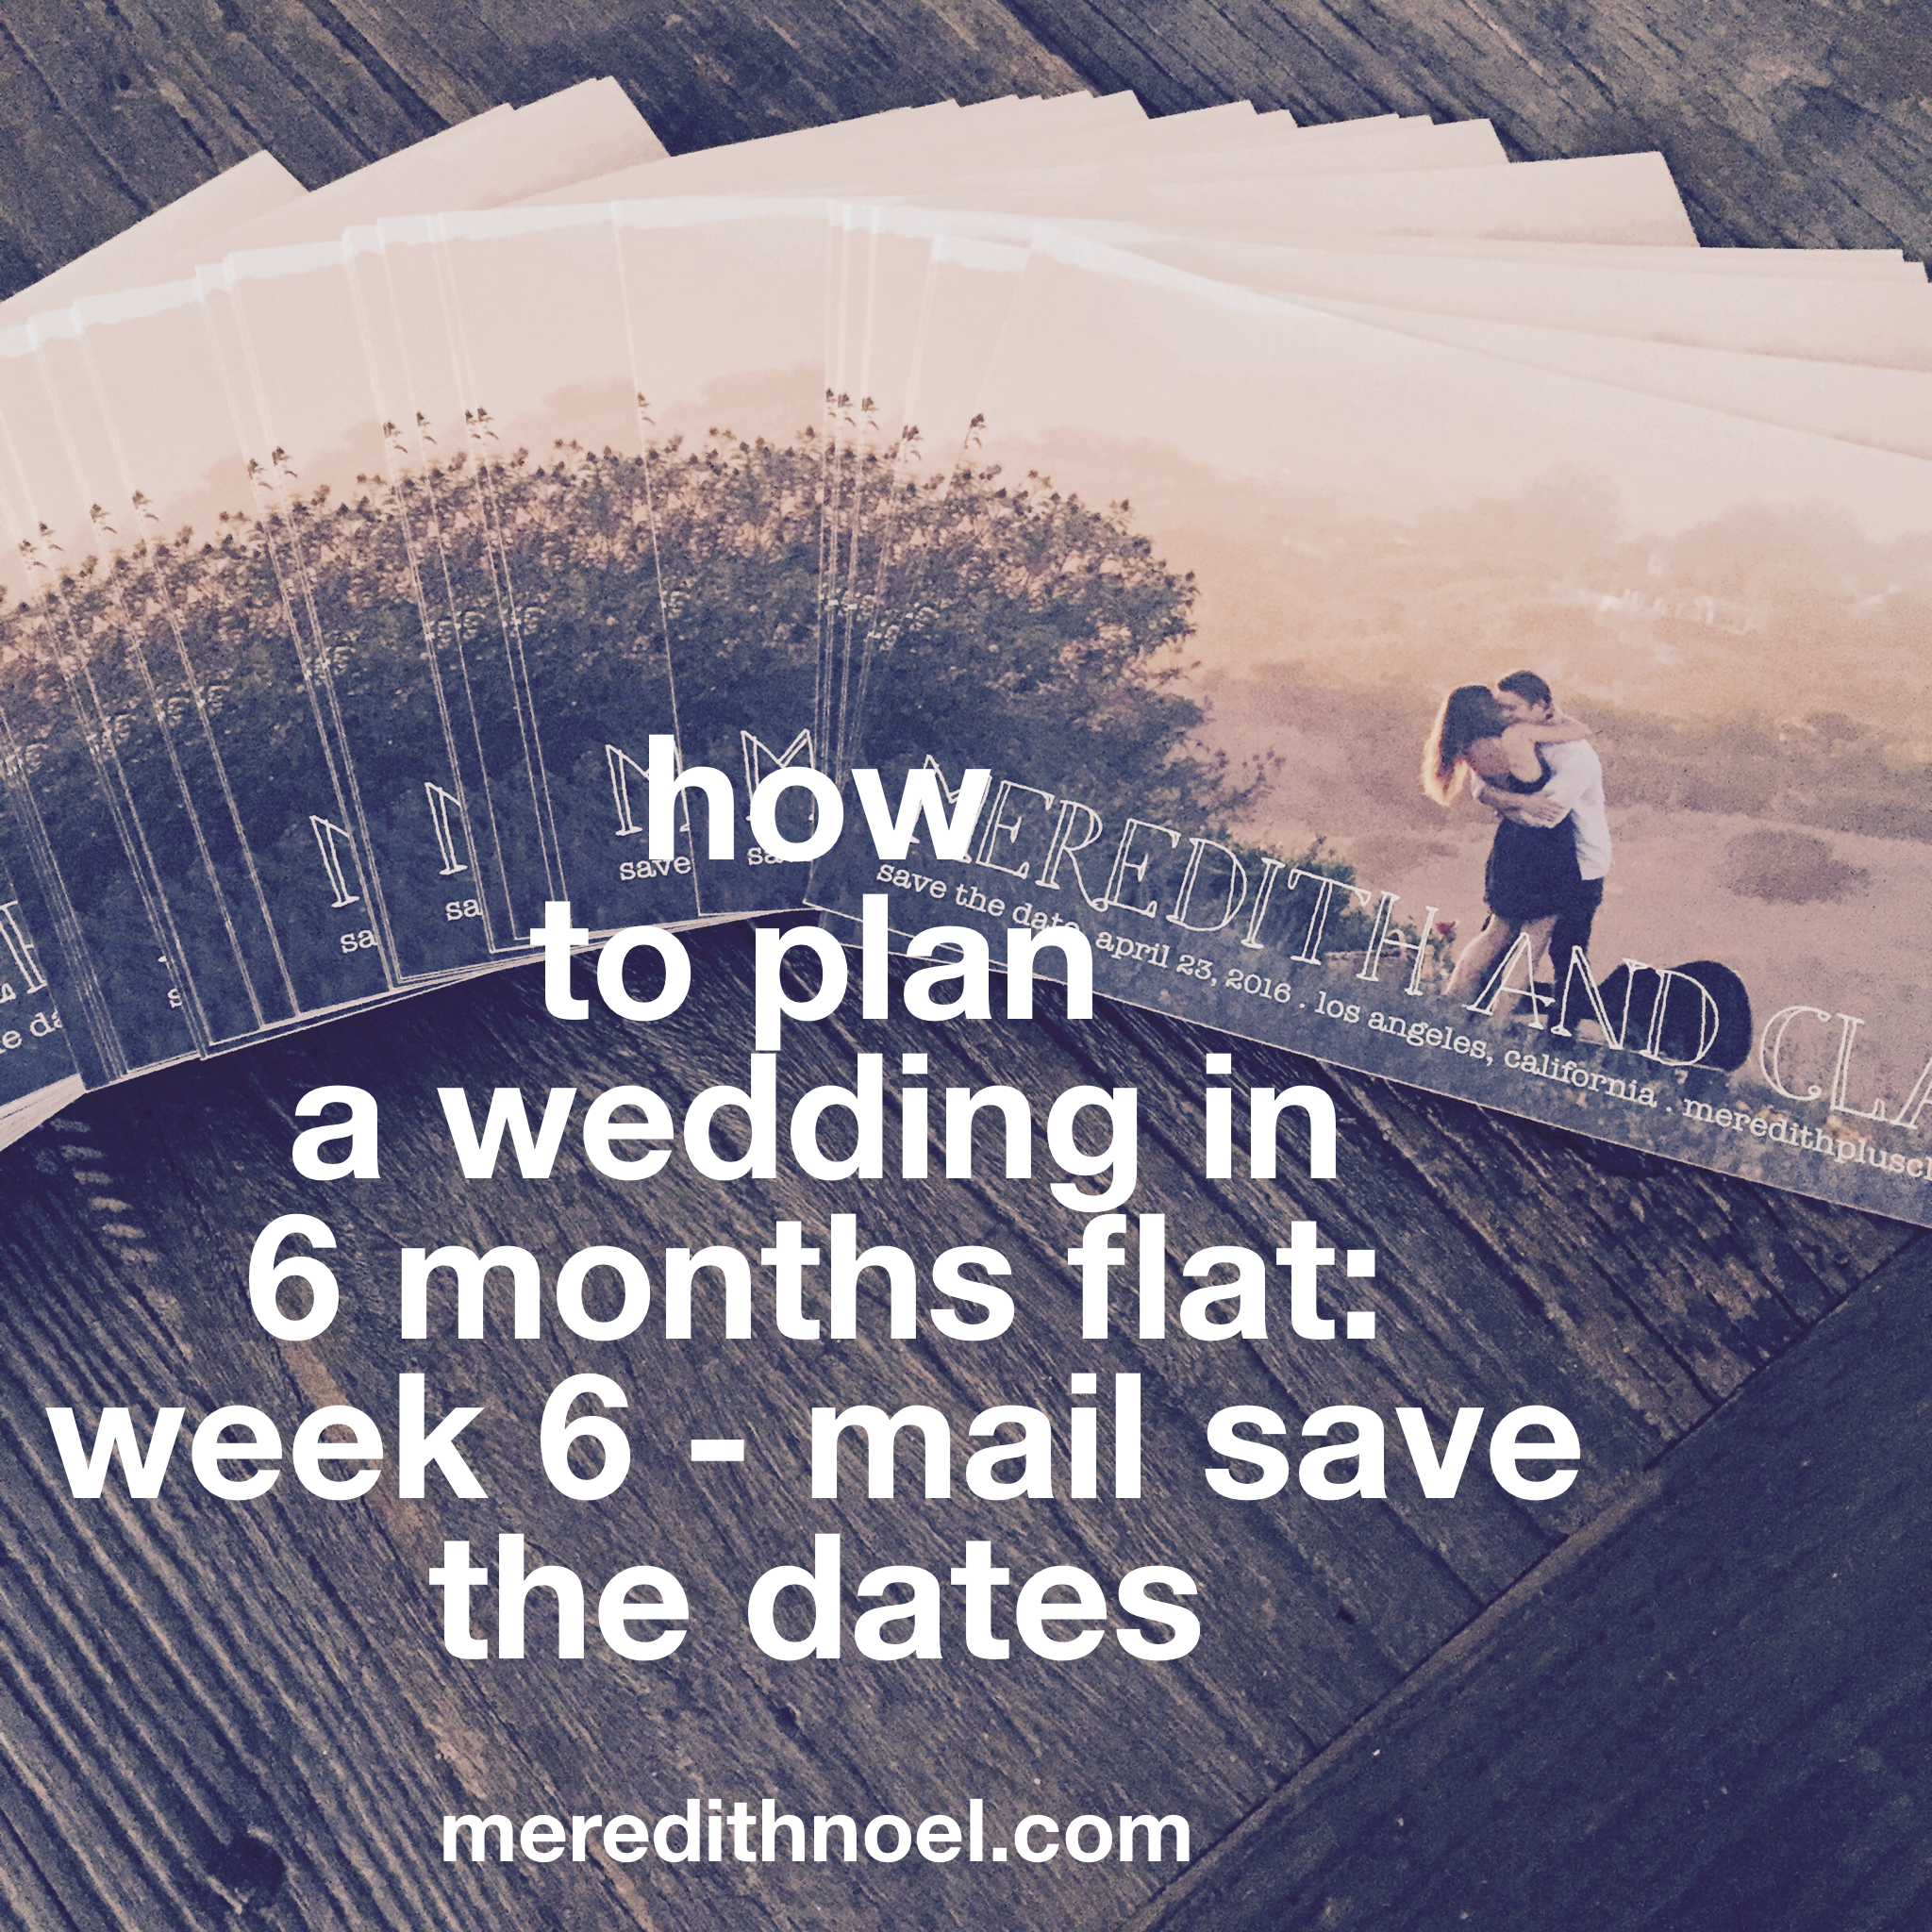 How To Plan A Wedding In 6 Months Flat: Week 6